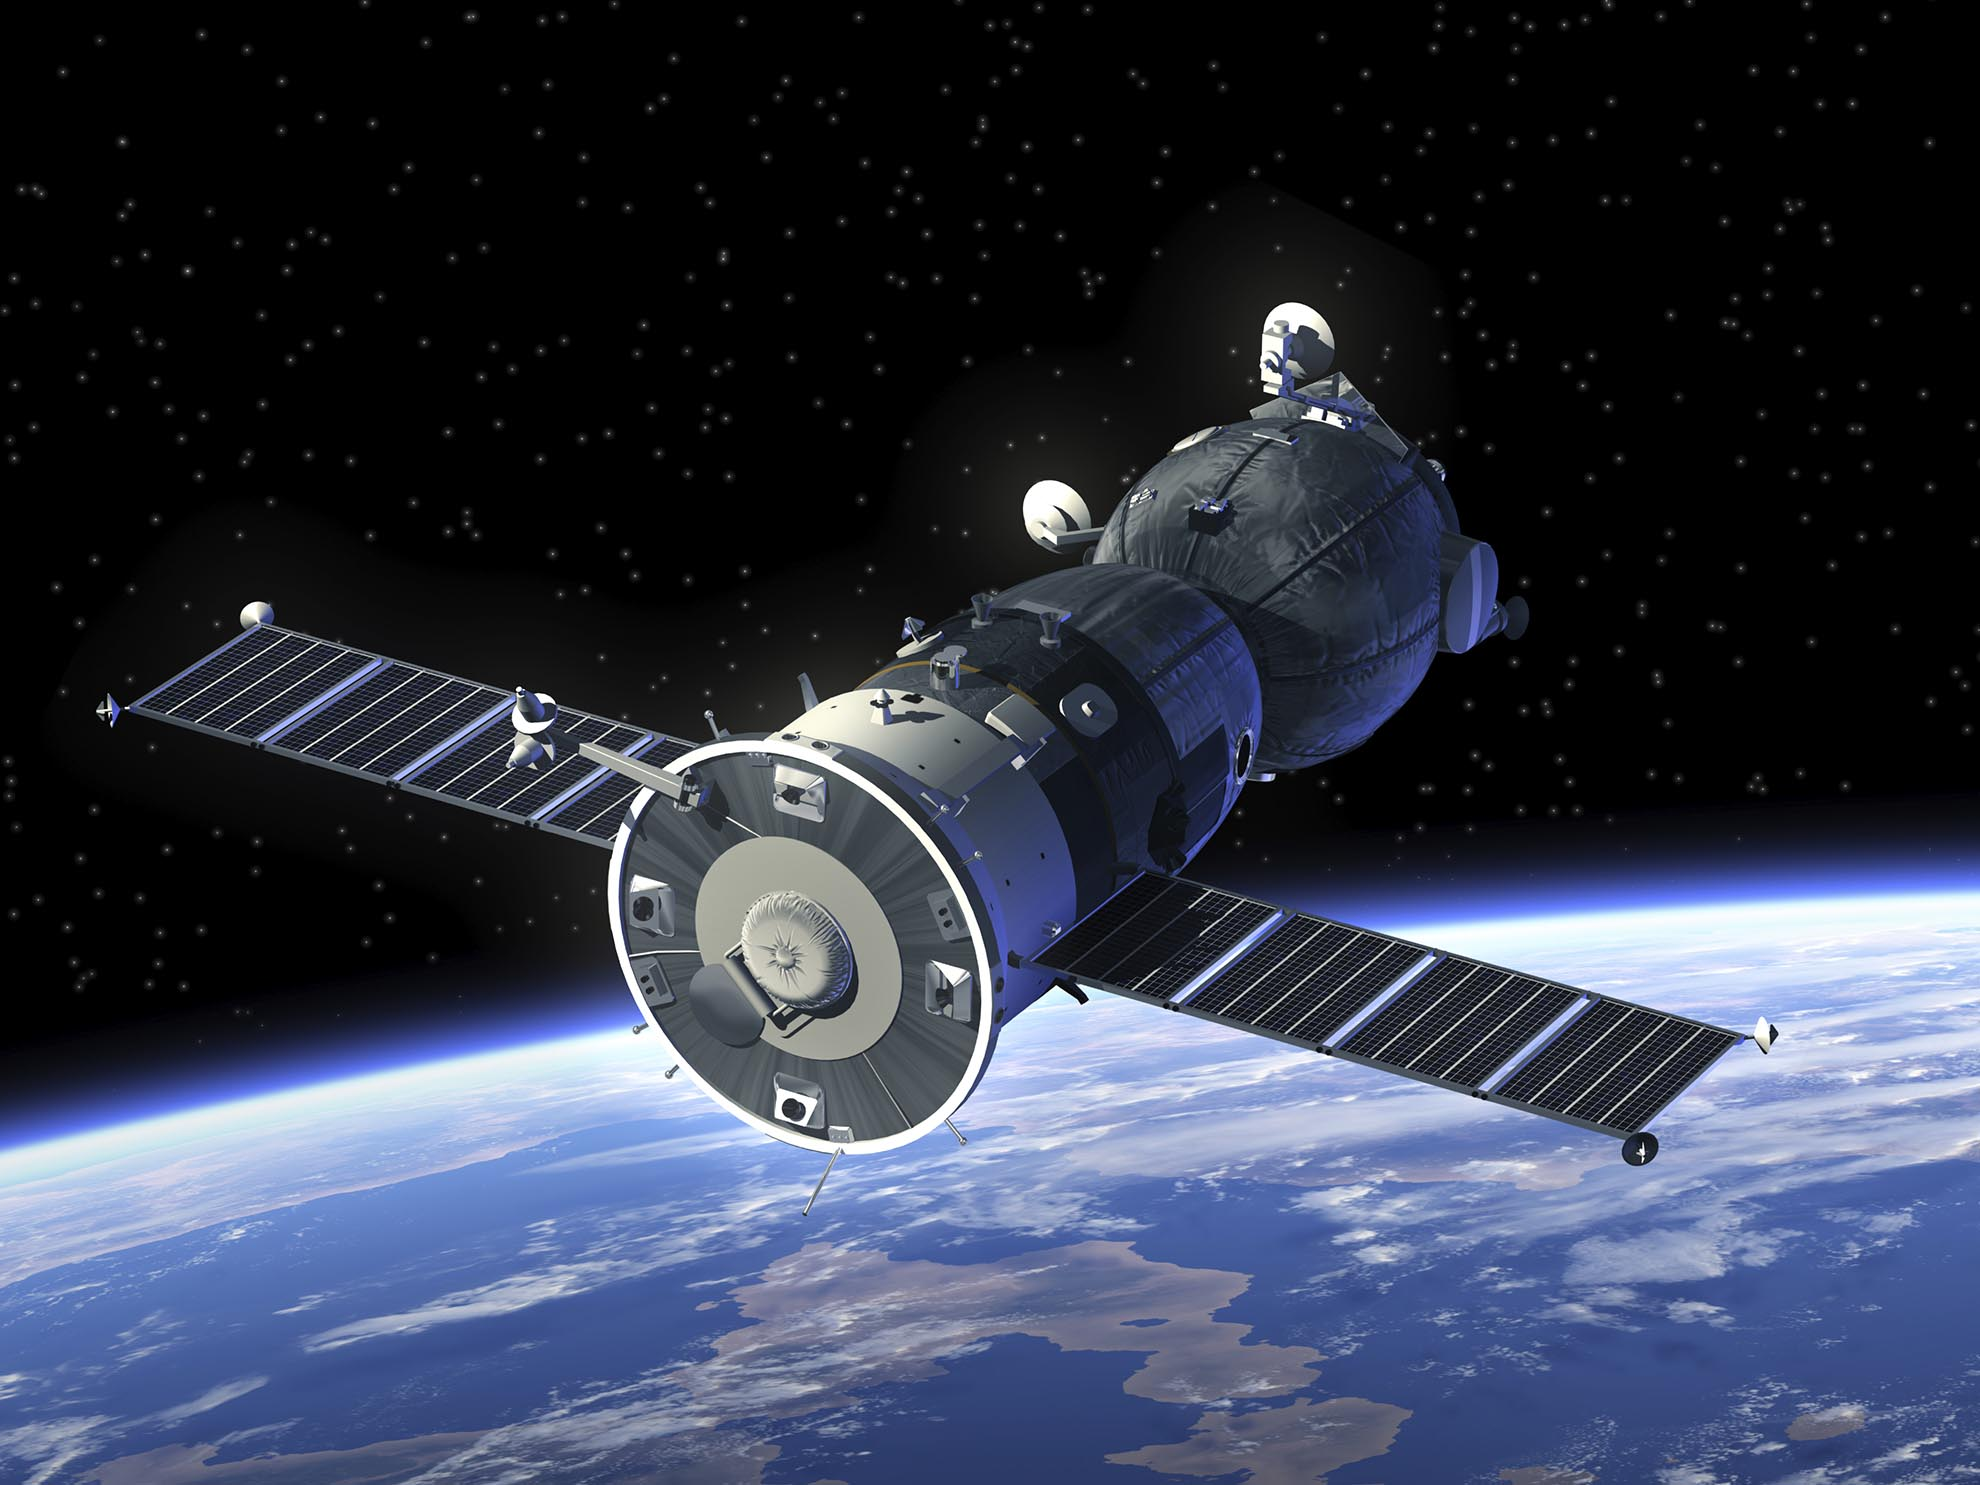 D.C. to Moscow: Space Exploration